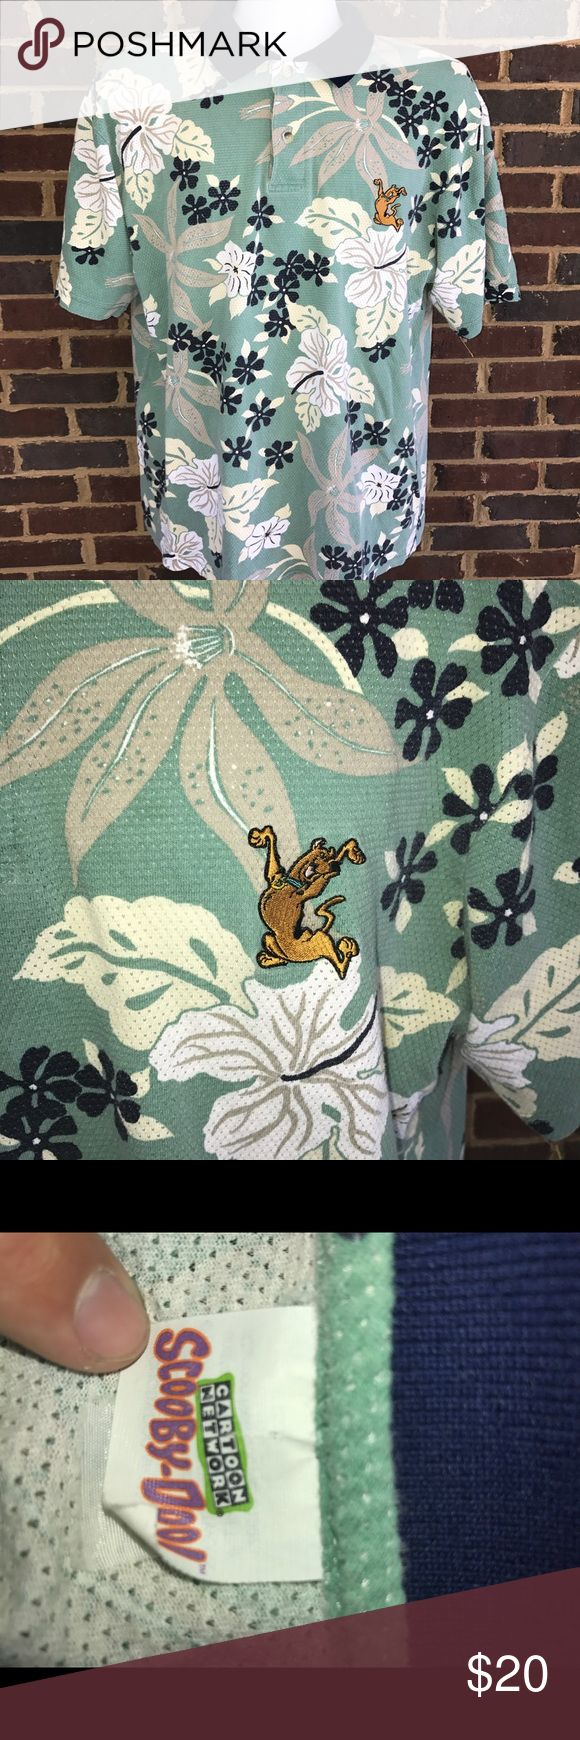 Vintage Scooby Doo Floral Hawaiian polo shirt Rare Scooby Doo Floral shirt. Excellent condition, 9/10. Can't see size on tag, fits XL. Vintage Shirts Polos